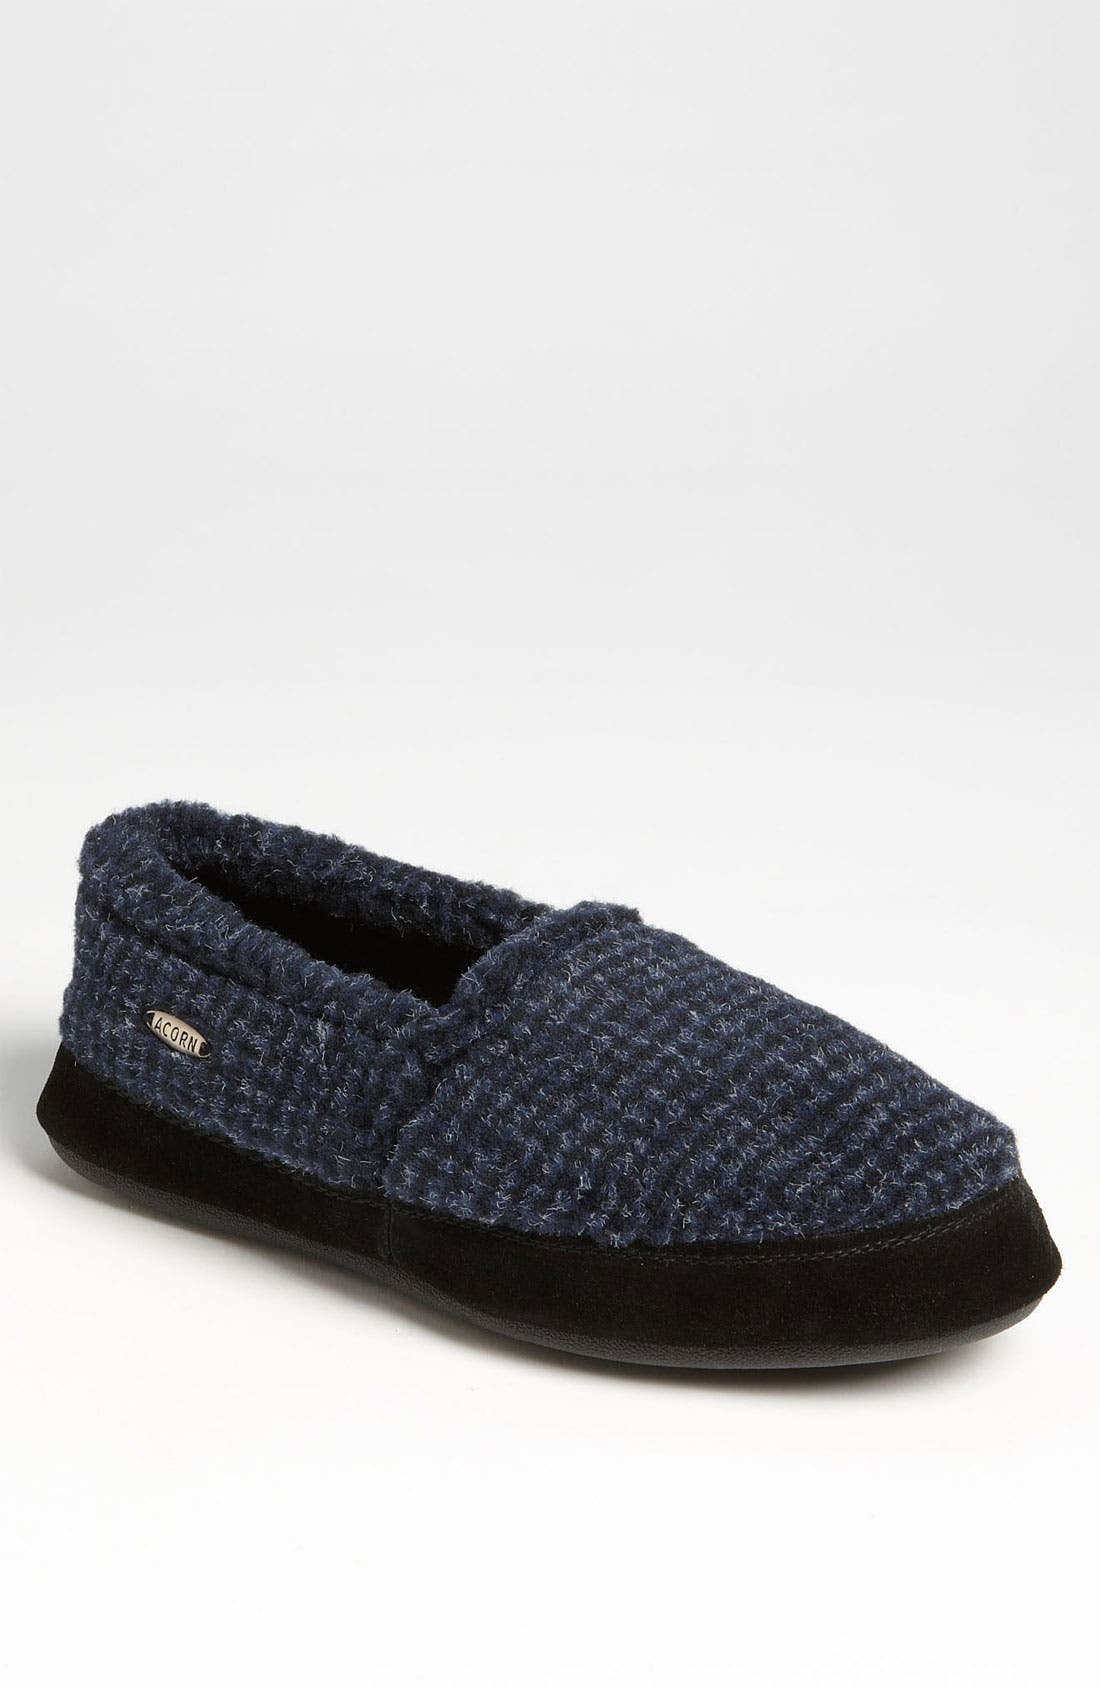 Main Image - Acorn 'Tex' Slipper (Men)